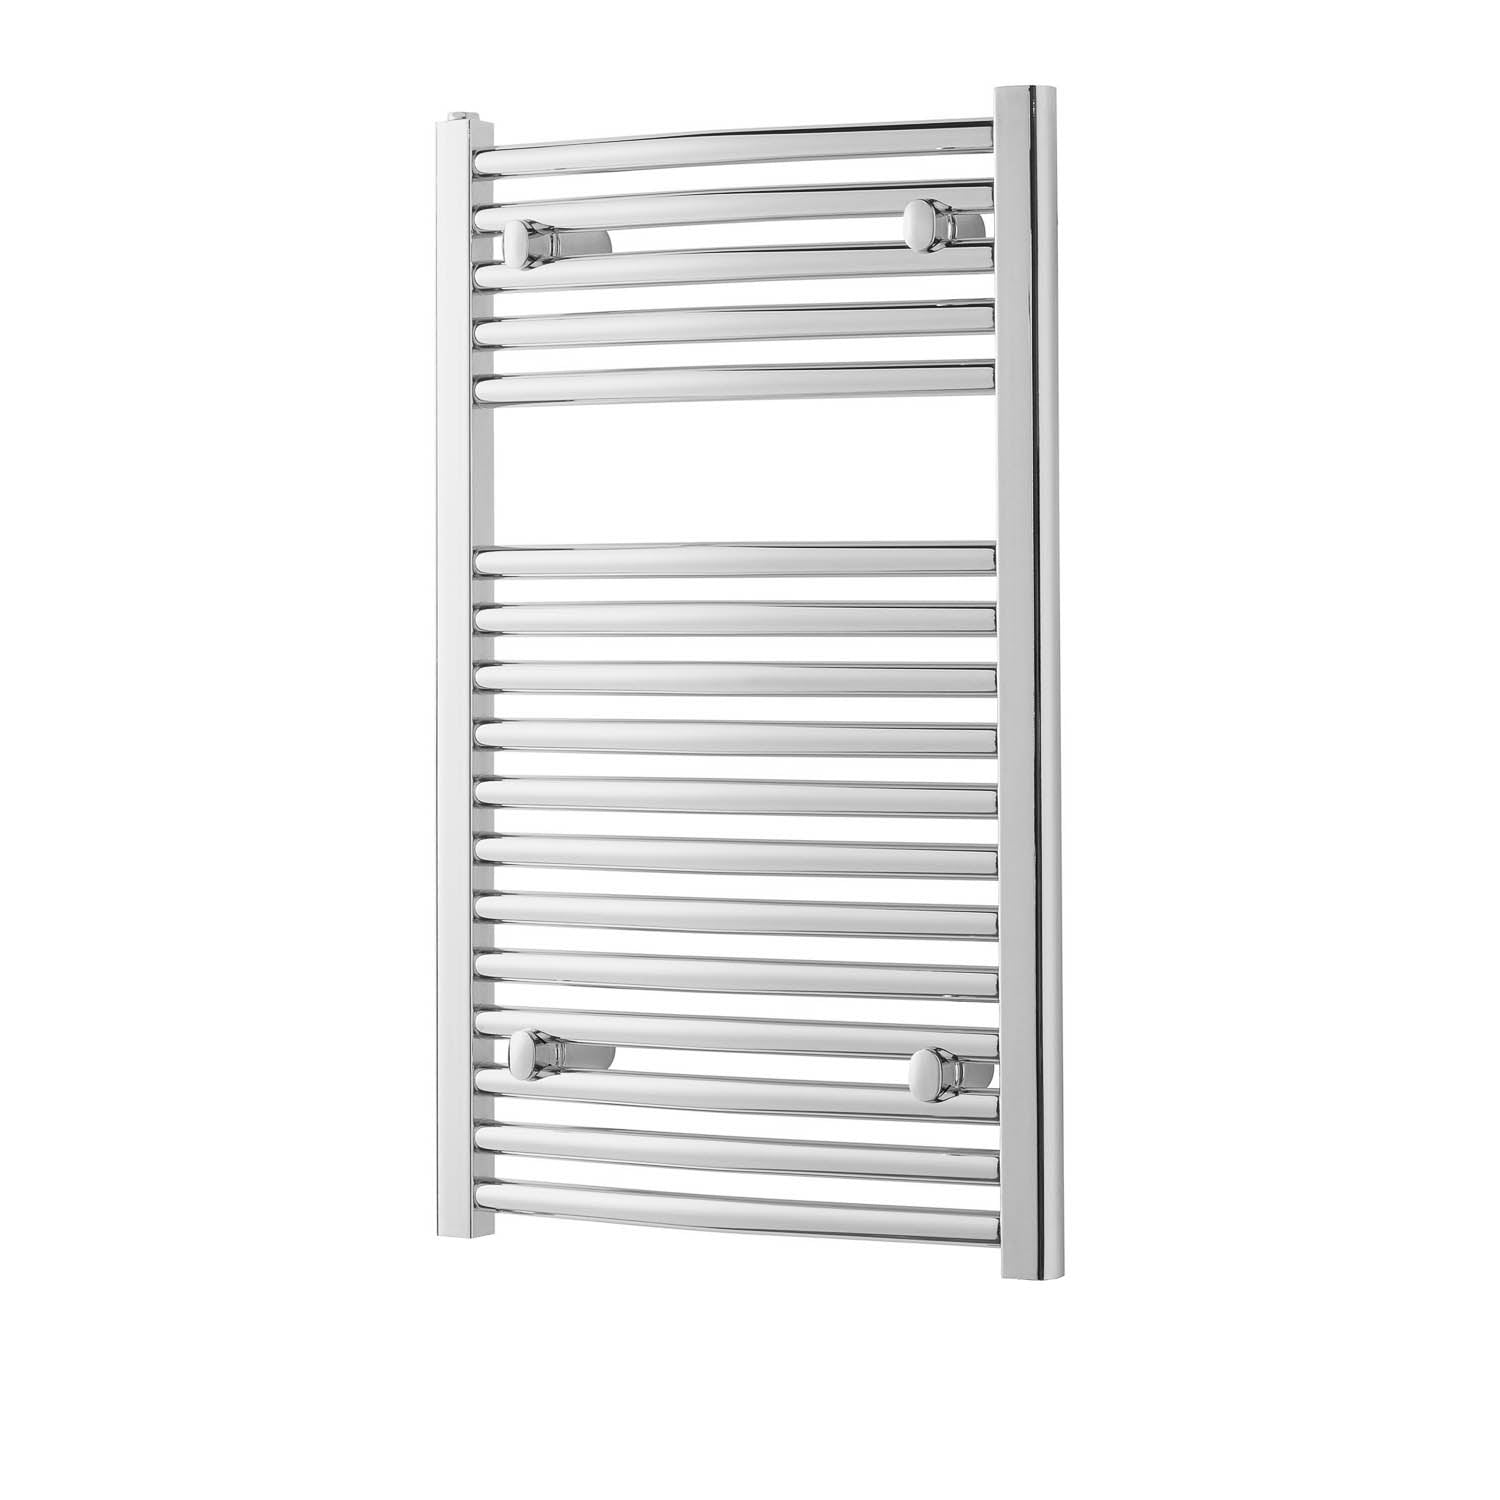 800x500mm Modale Anti-Scald Towel Rail with a chrome finish on a white background